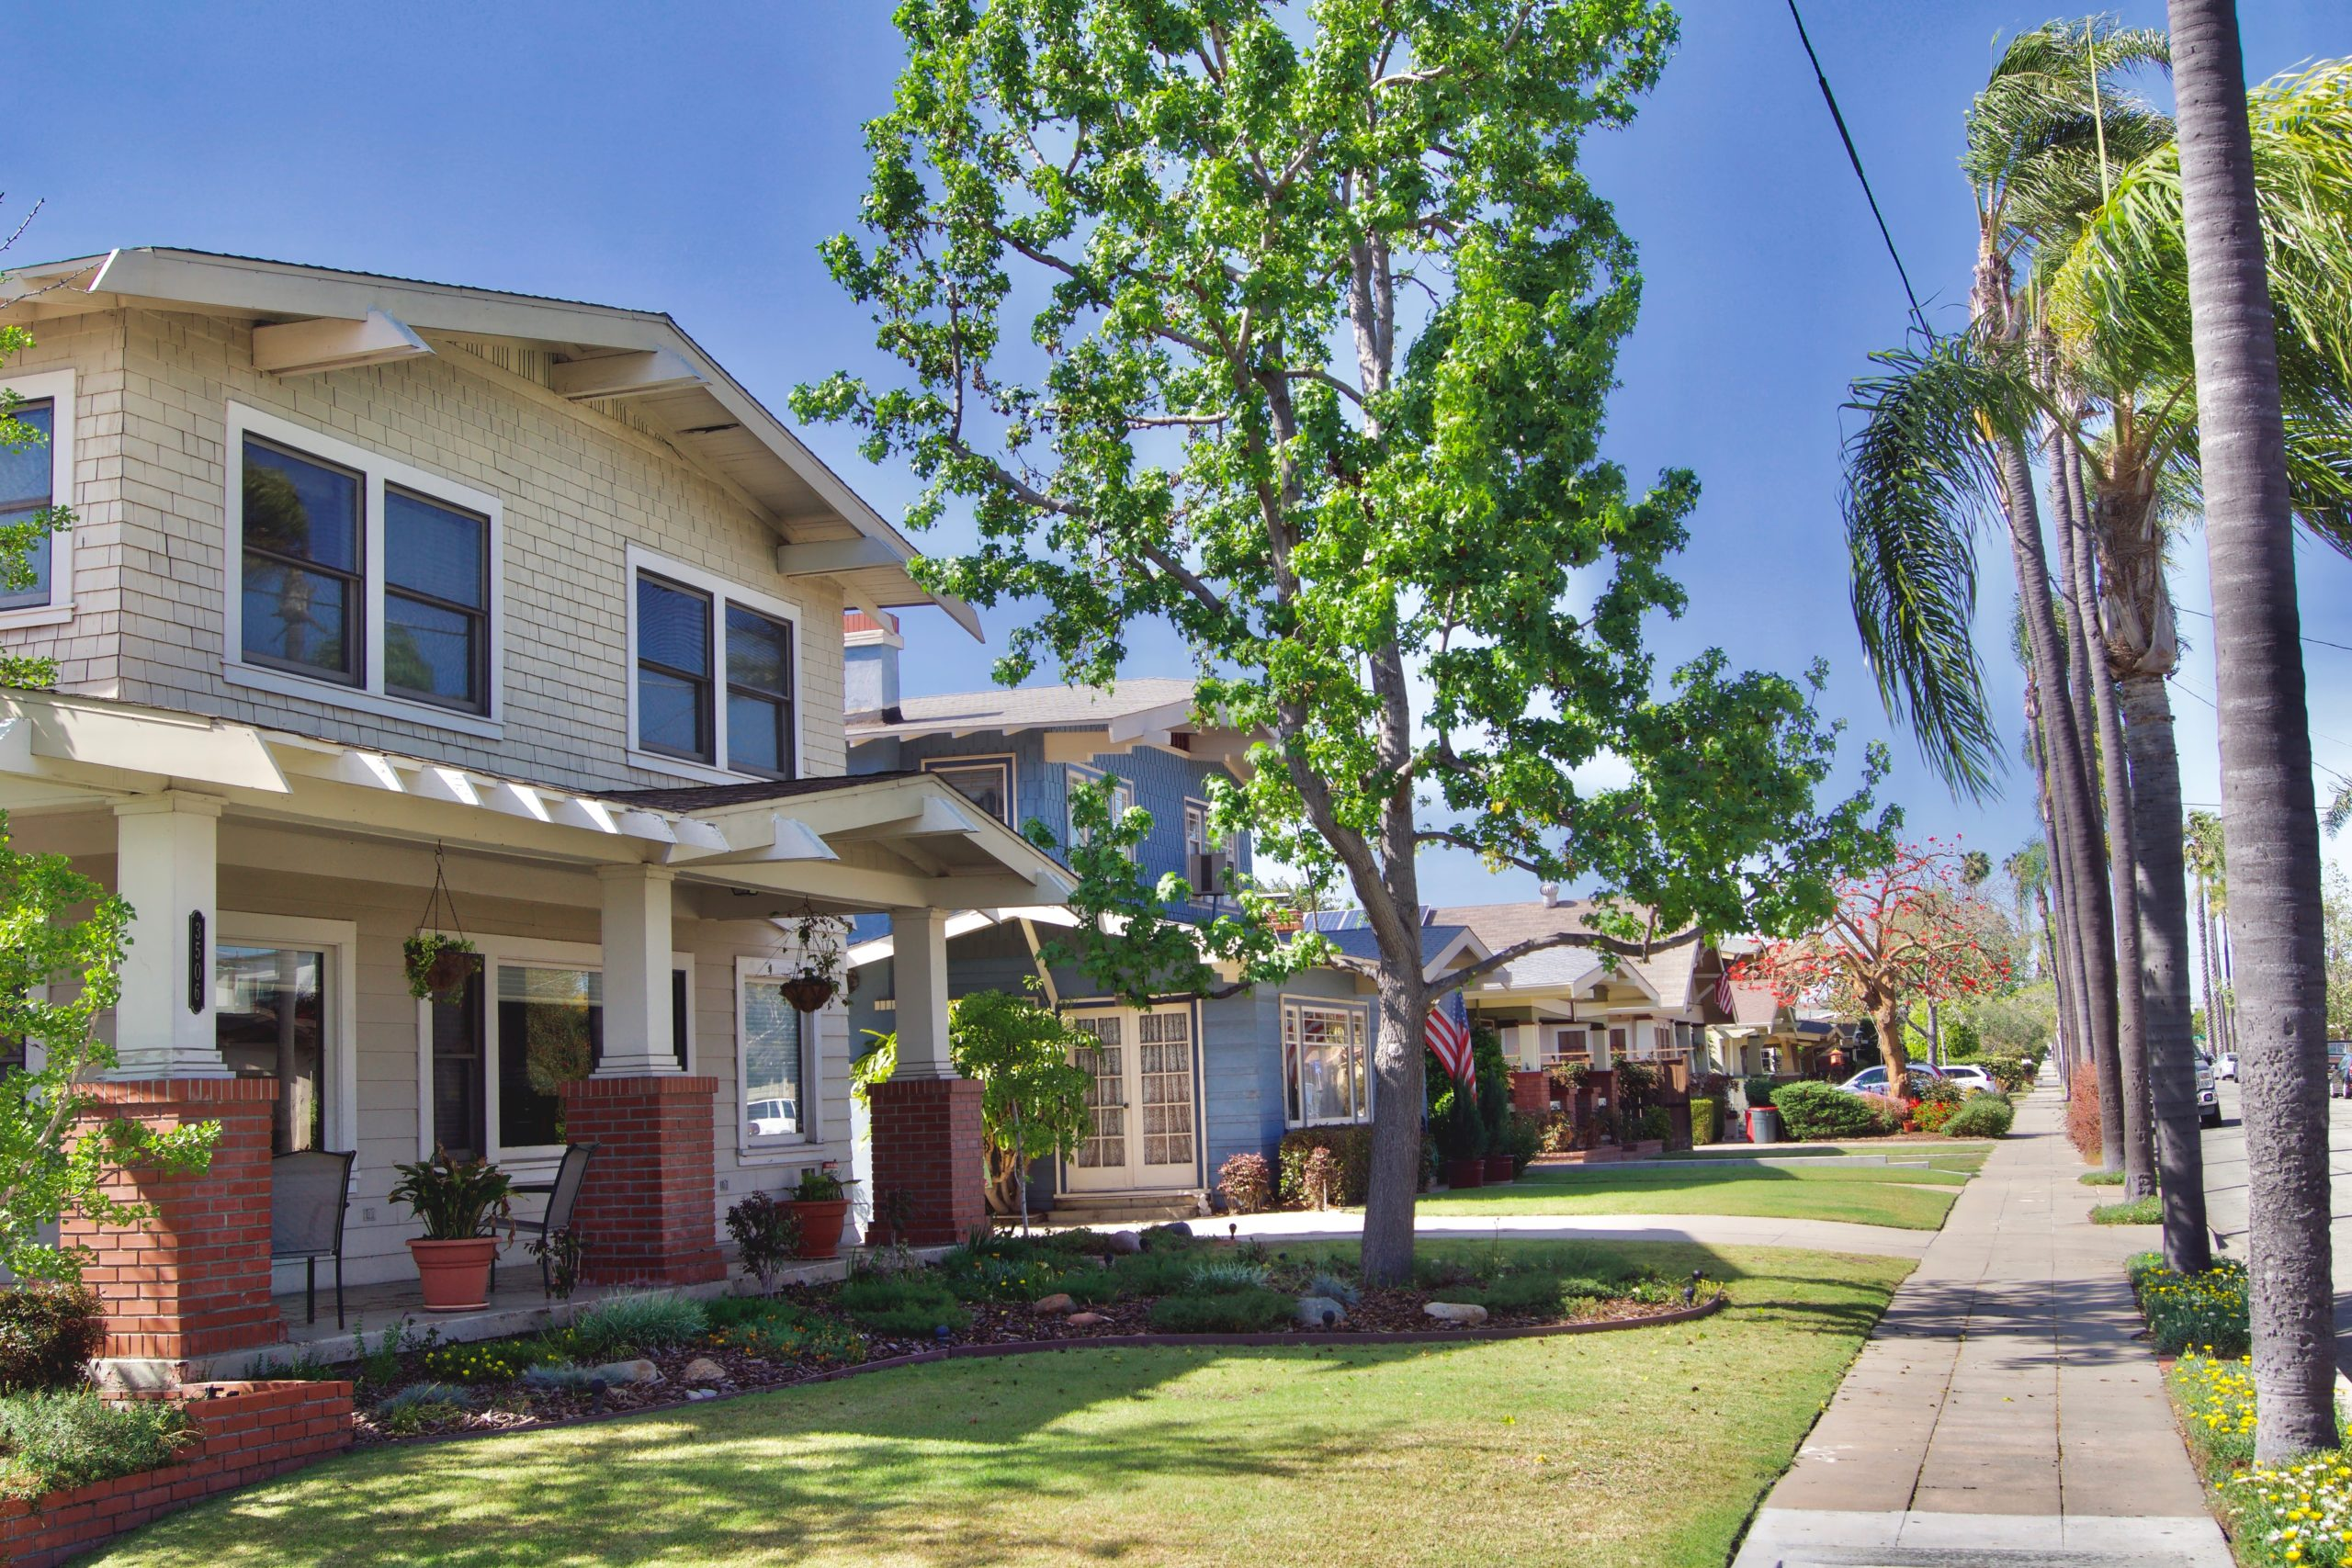 The California Housing Market is thriving in a big way. As a result, homes like these are receiving multiple offers and are selling quickly.